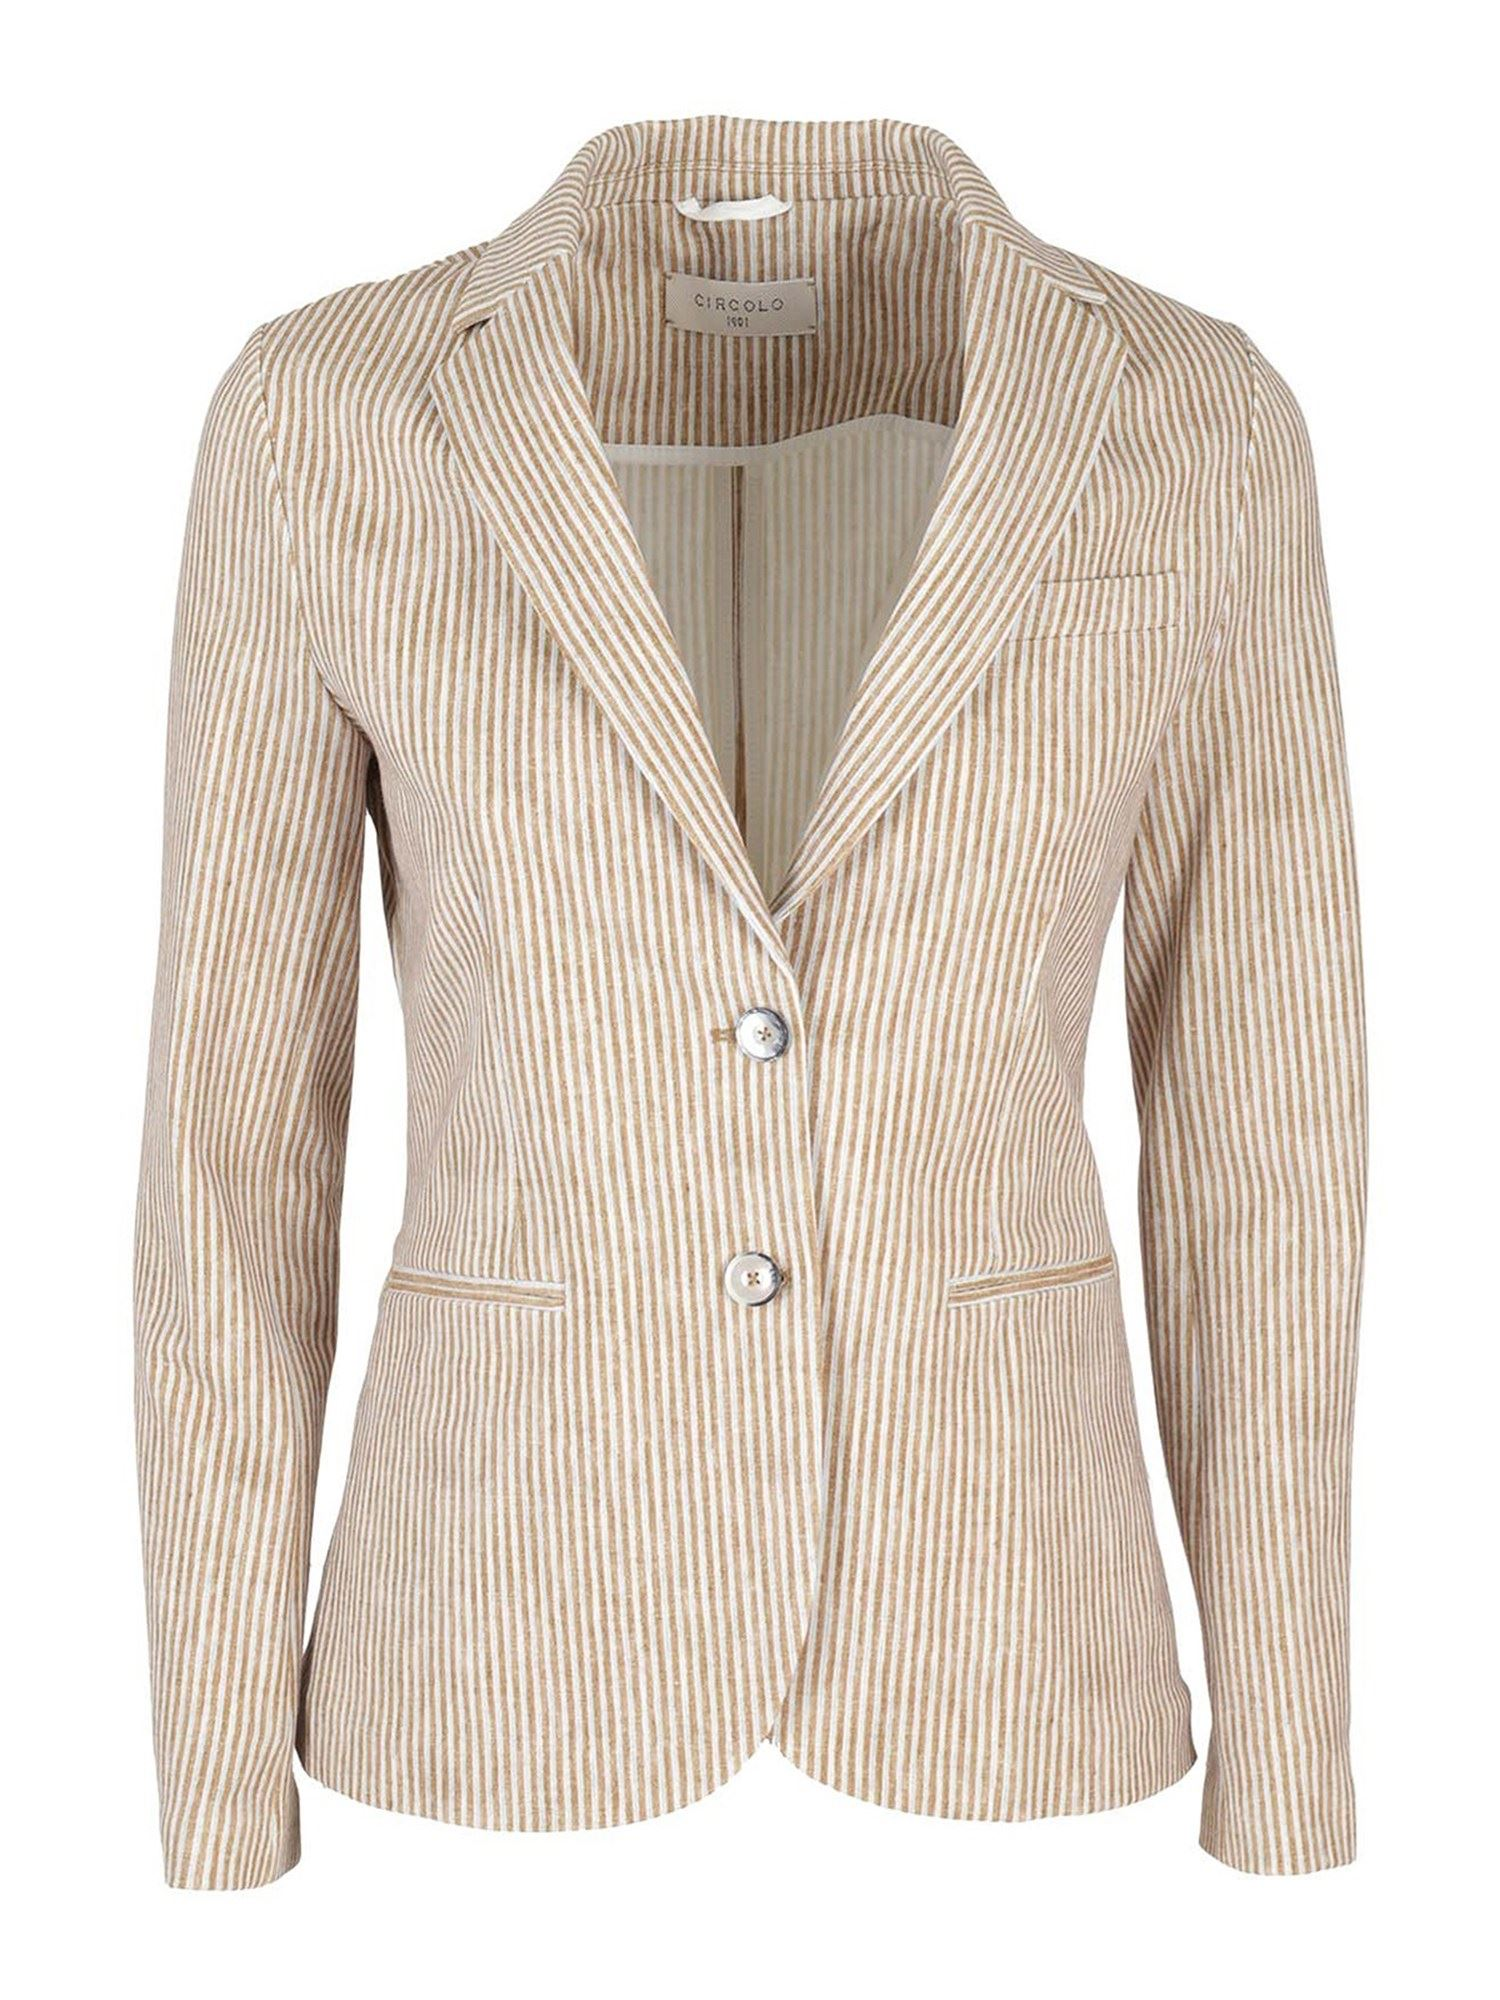 Circolo 1901 Clothing STRIPED BLAZER IN BISCUIT COLOR